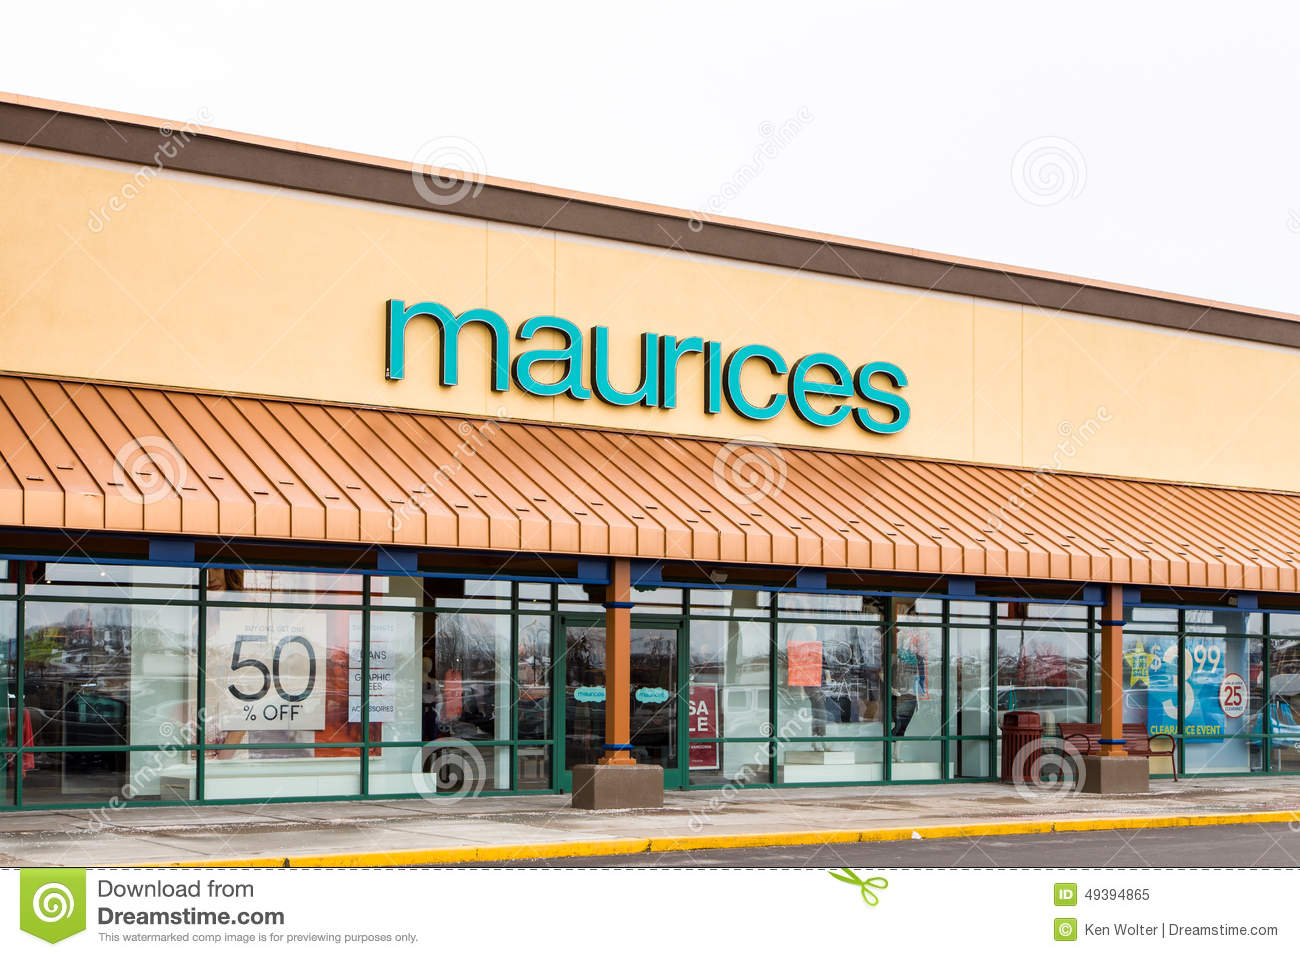 store-front-pictures-027.jpg